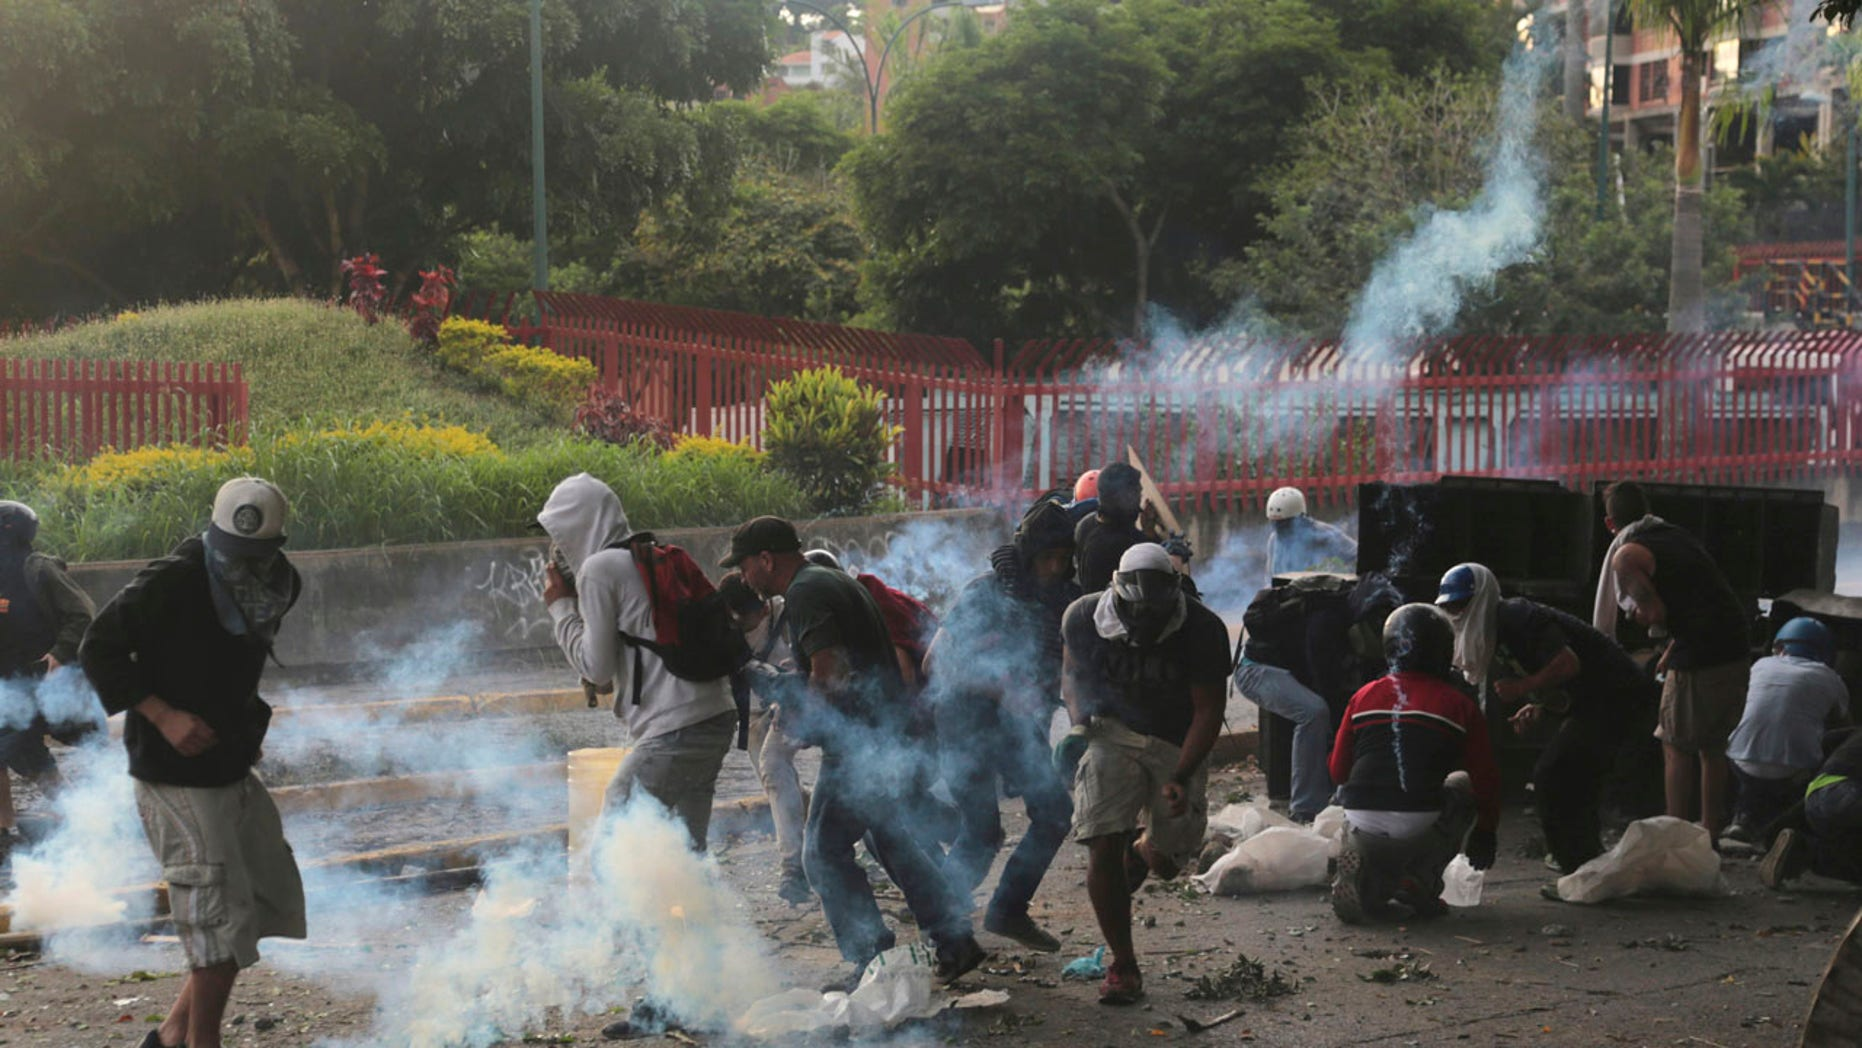 Demonstrators clash with the Bolivarian National Guard, at El Hatillo municipality outside Caracas, Venezuela, Tuesday, May 2, 2017.